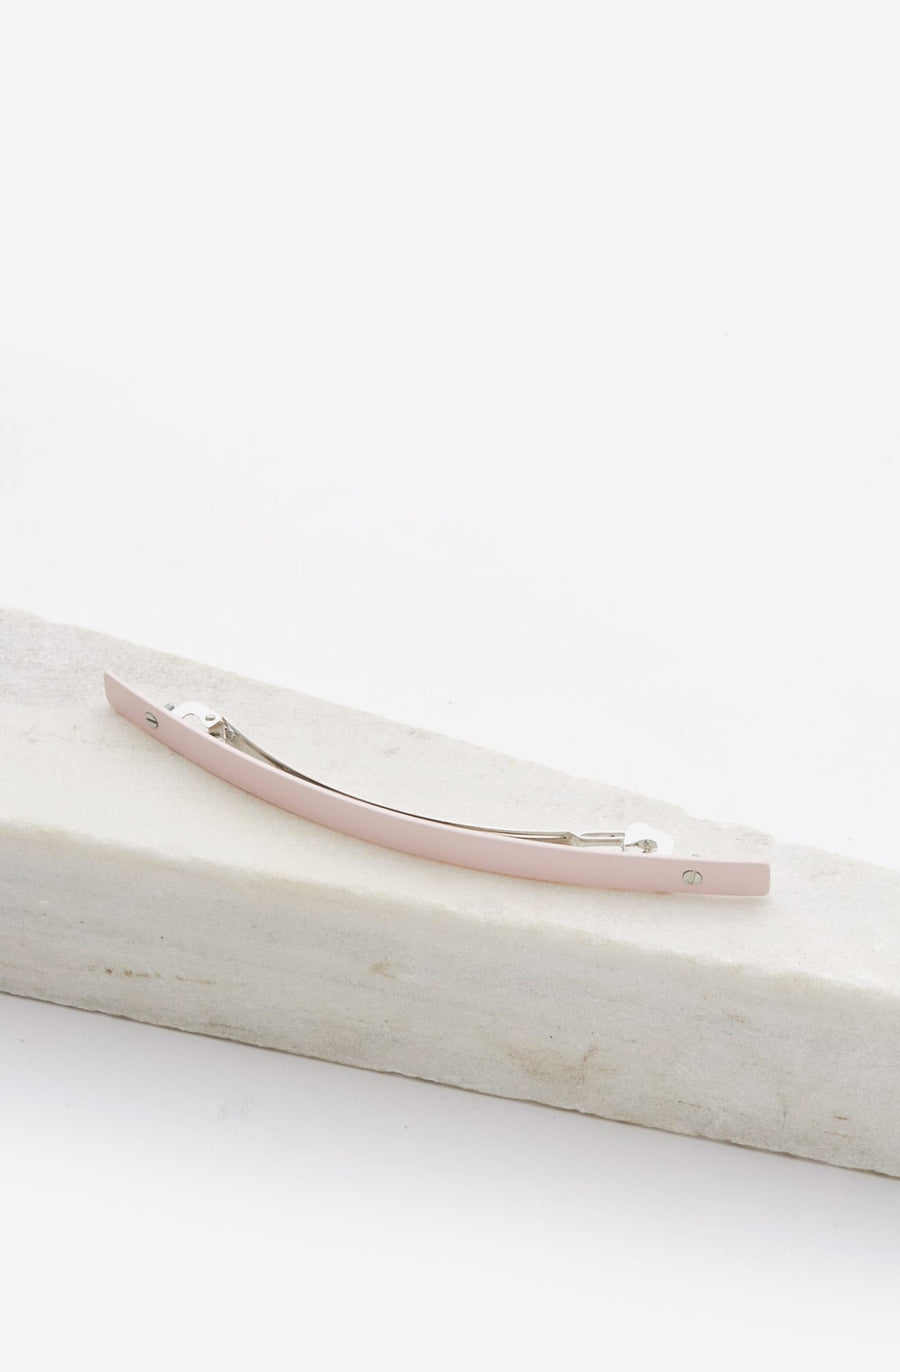 Barrette 021 XS-powder pink